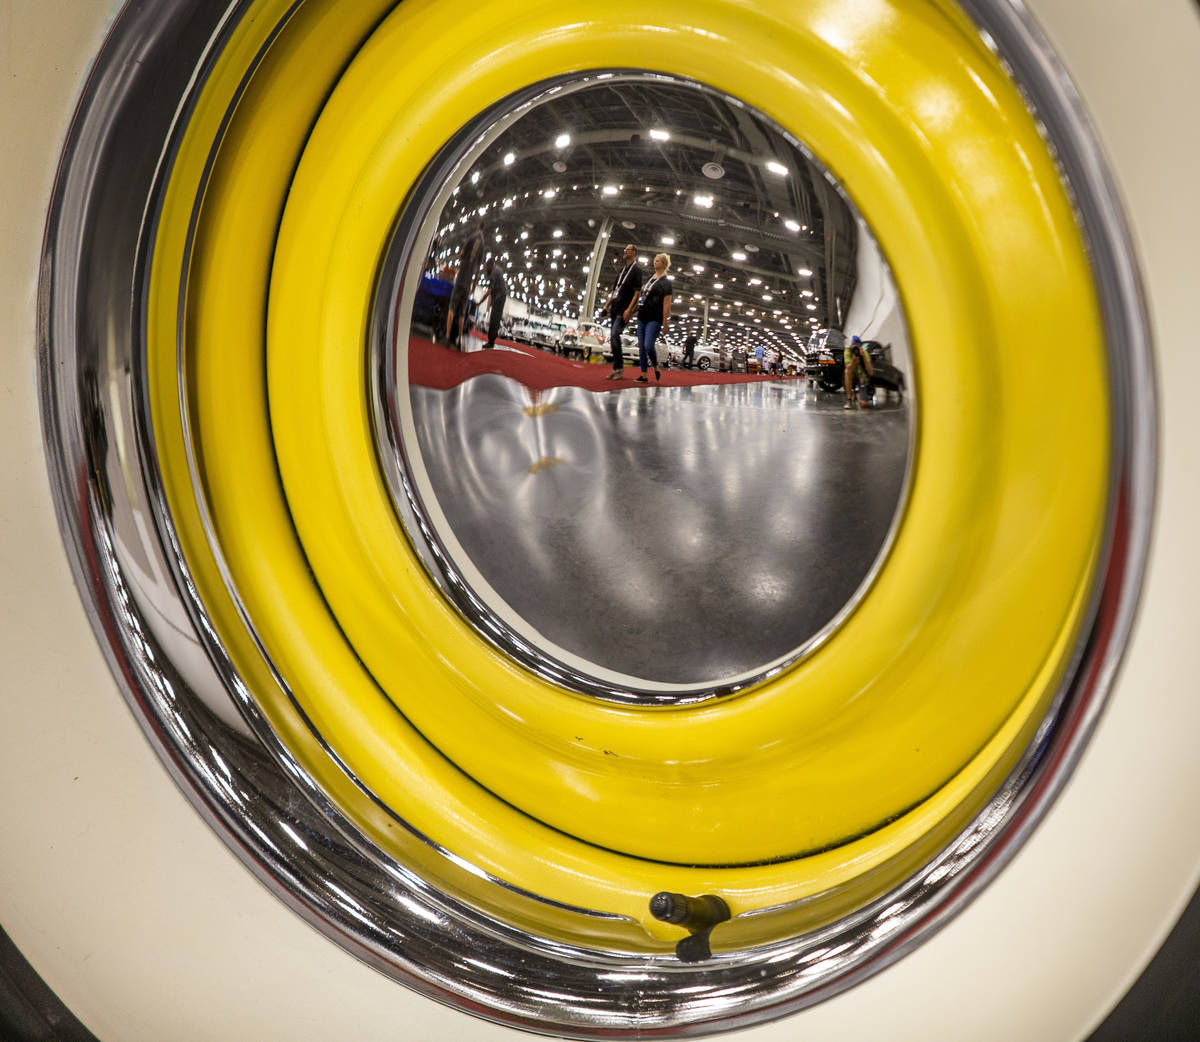 Barrett-Jackson collector car auction at the Las Vegas Convention Center West Hall on Friday, J ...